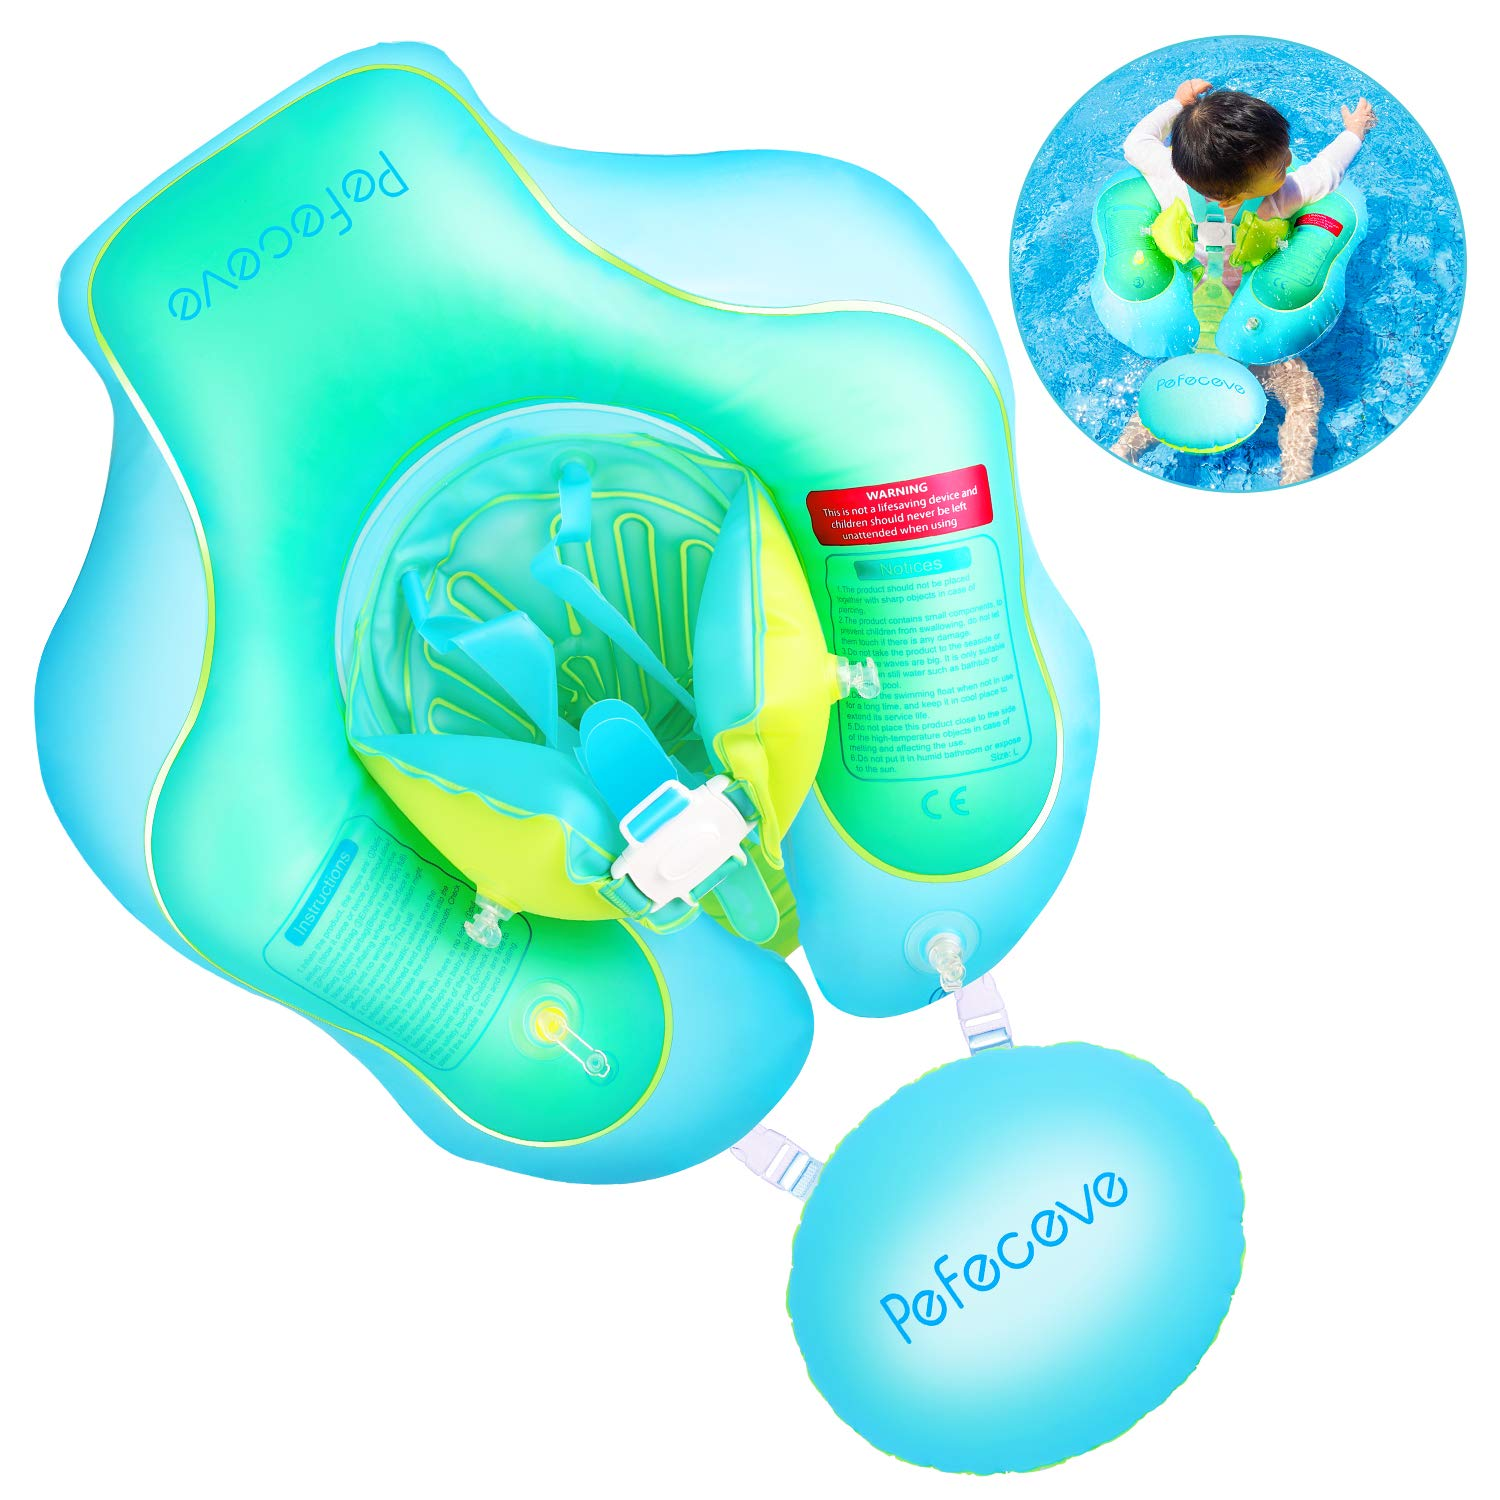 PEFECEVE Baby Inflatable Swimming Pool Float - 2019 Upgrade Safety Approved Leakproof Infants Toddlers Children Waist Ring Pool Toys Bathtub Swim Trainer for Age of 6-36 Months, Large by PEFECEVE